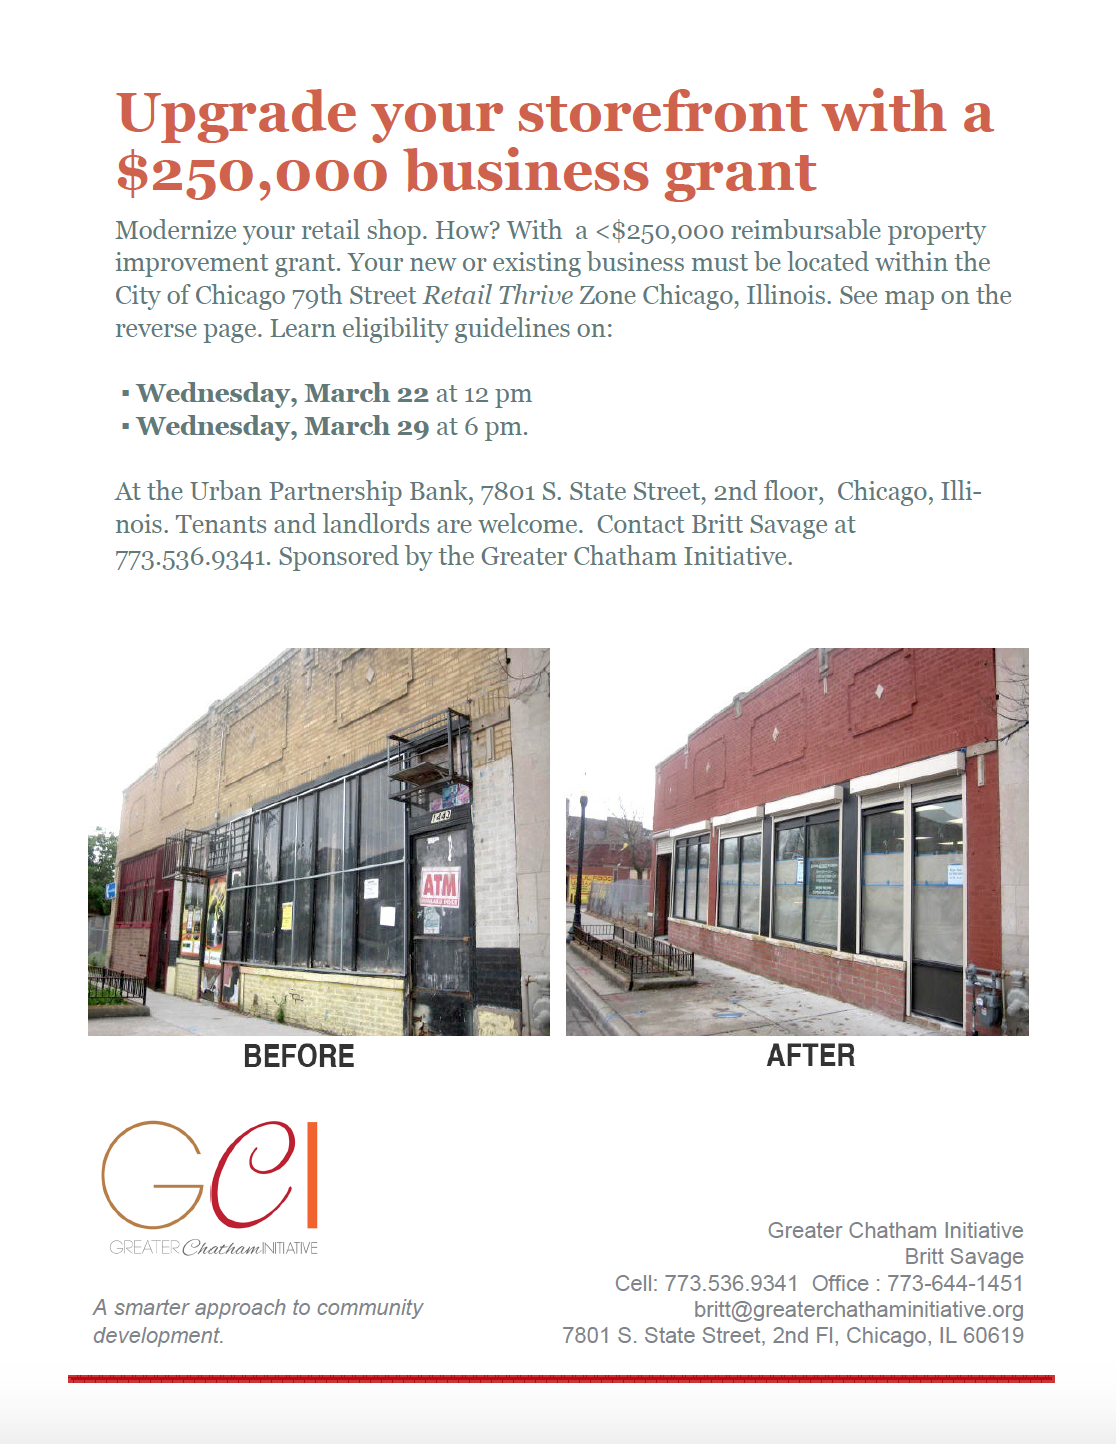 Retail Thrive - The Greater Chatham Initiative on